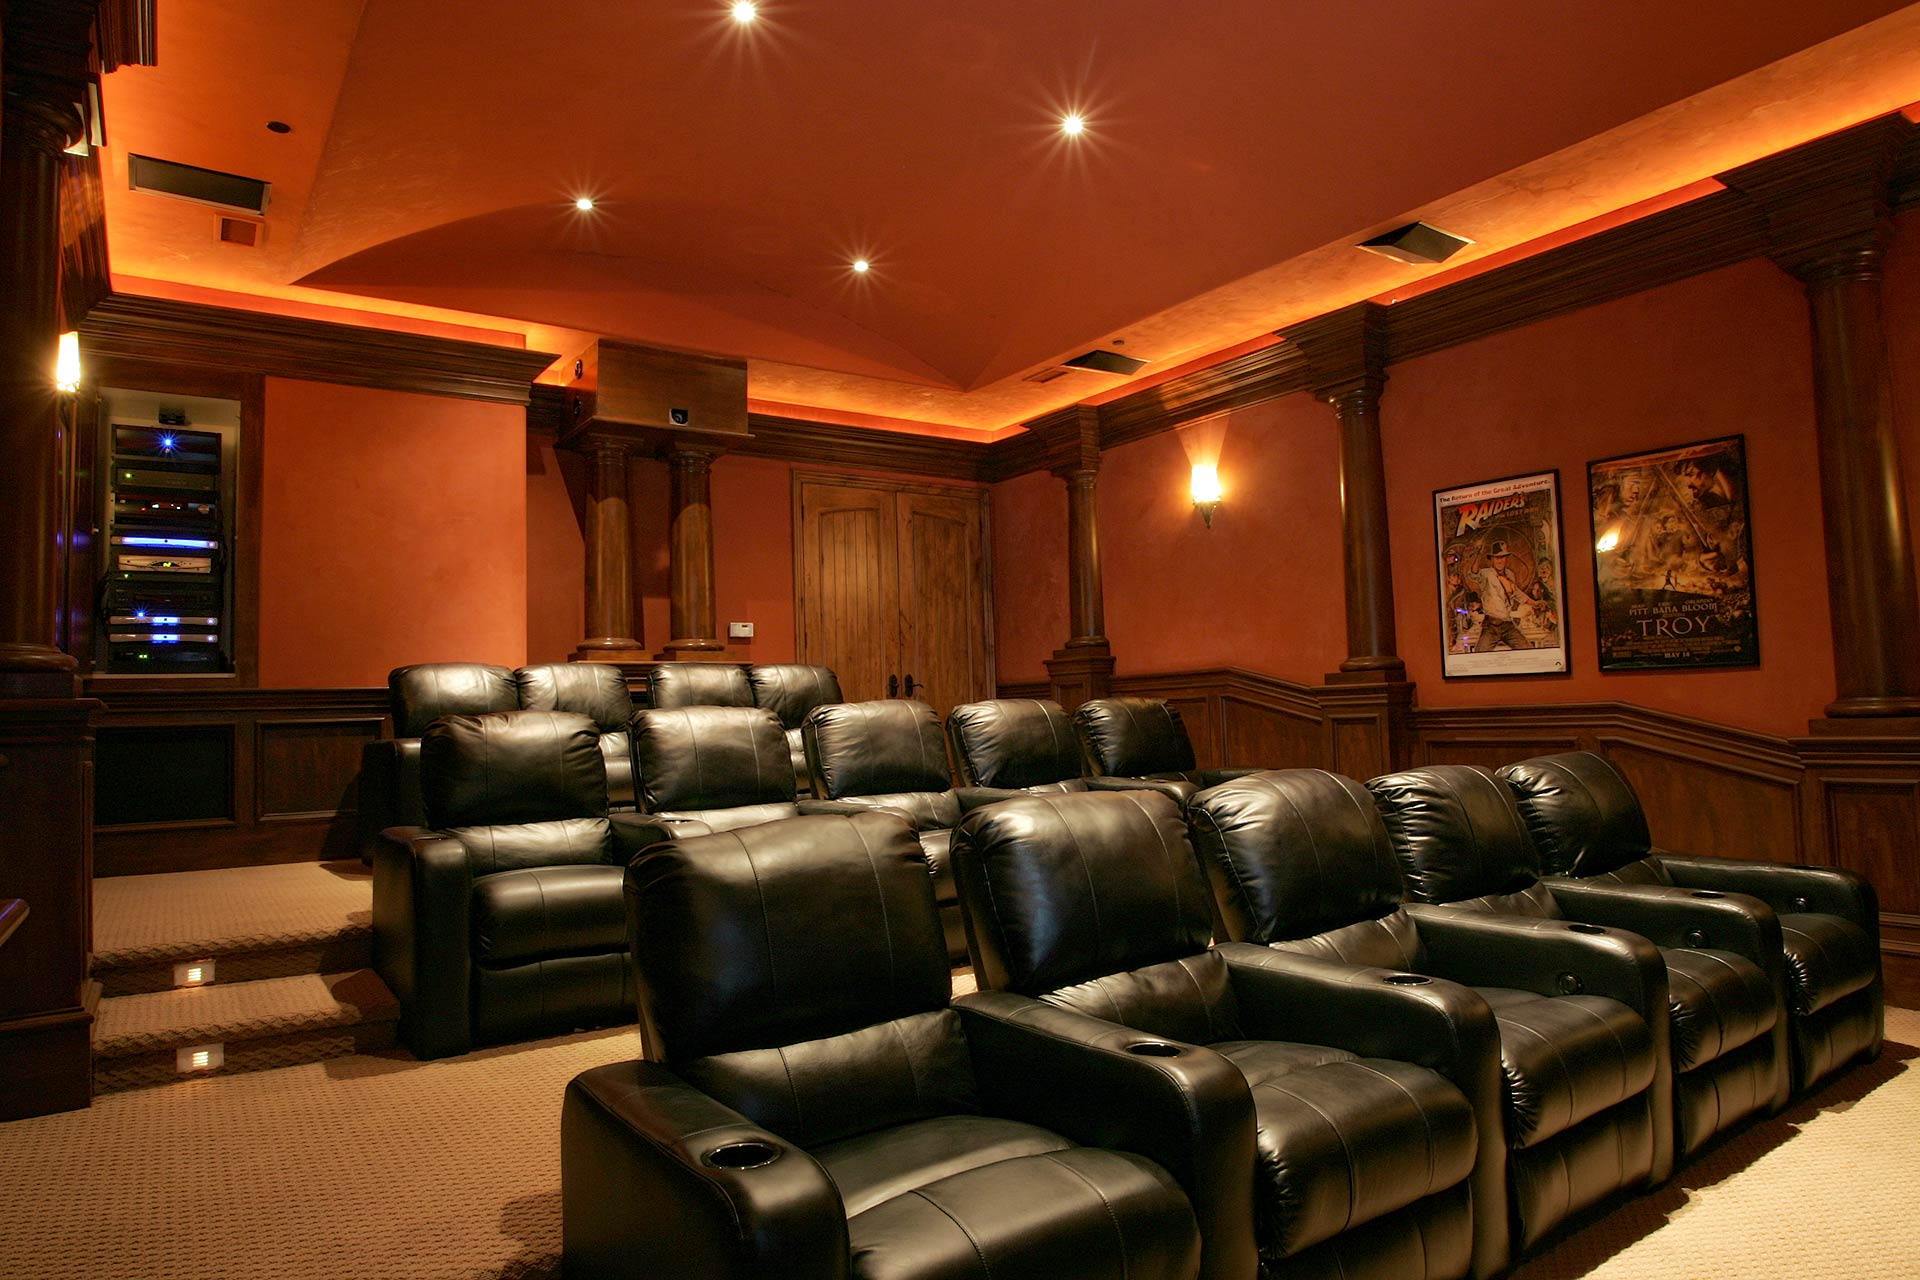 kiwi-audio-visual-home-theaters-custom-san-diego-2.jpg